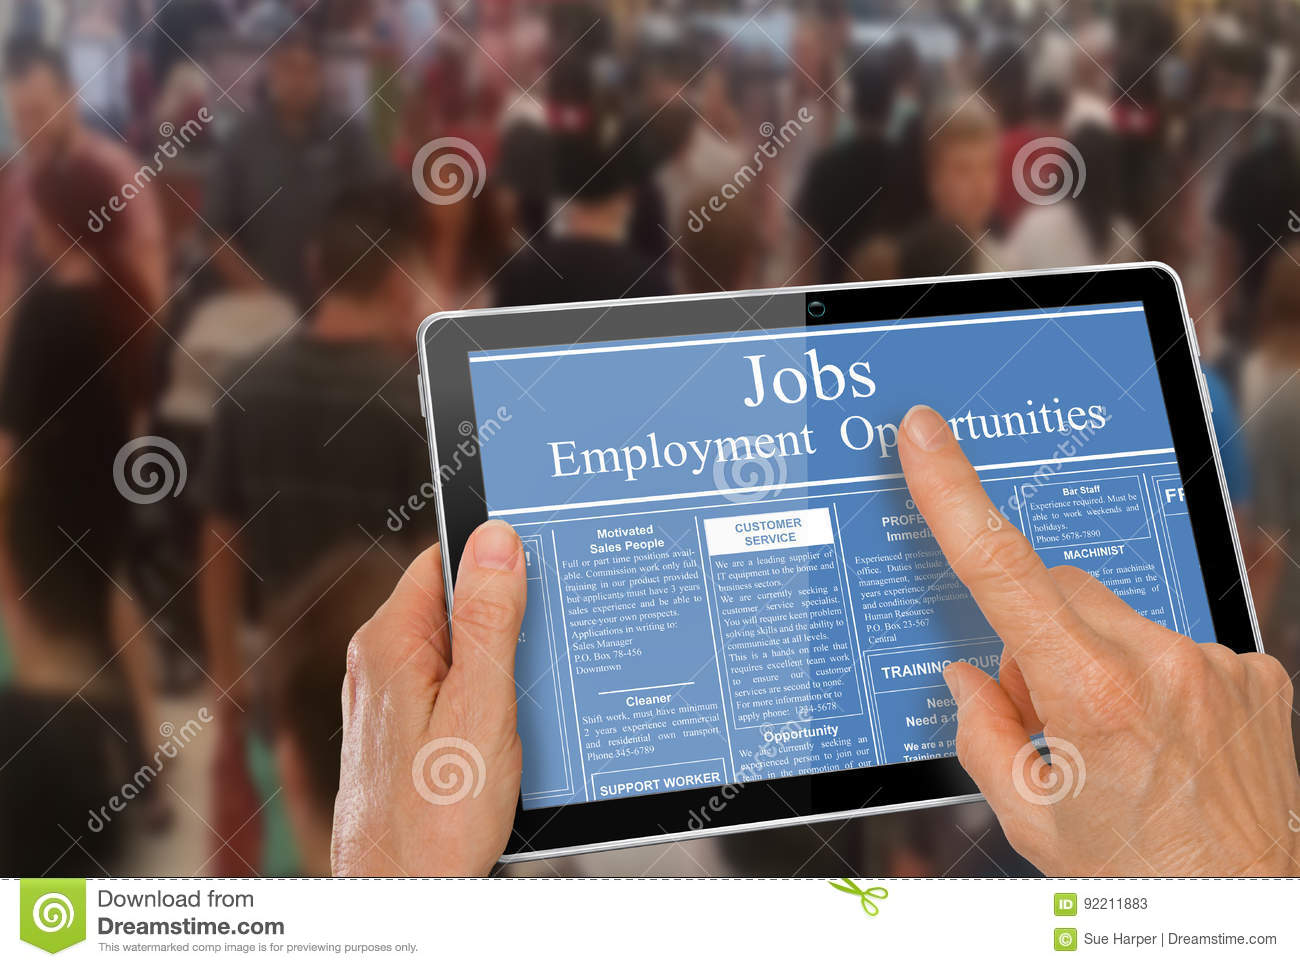 Online job hunting Hands with computer tablet reading employment ads infront of crowd of people